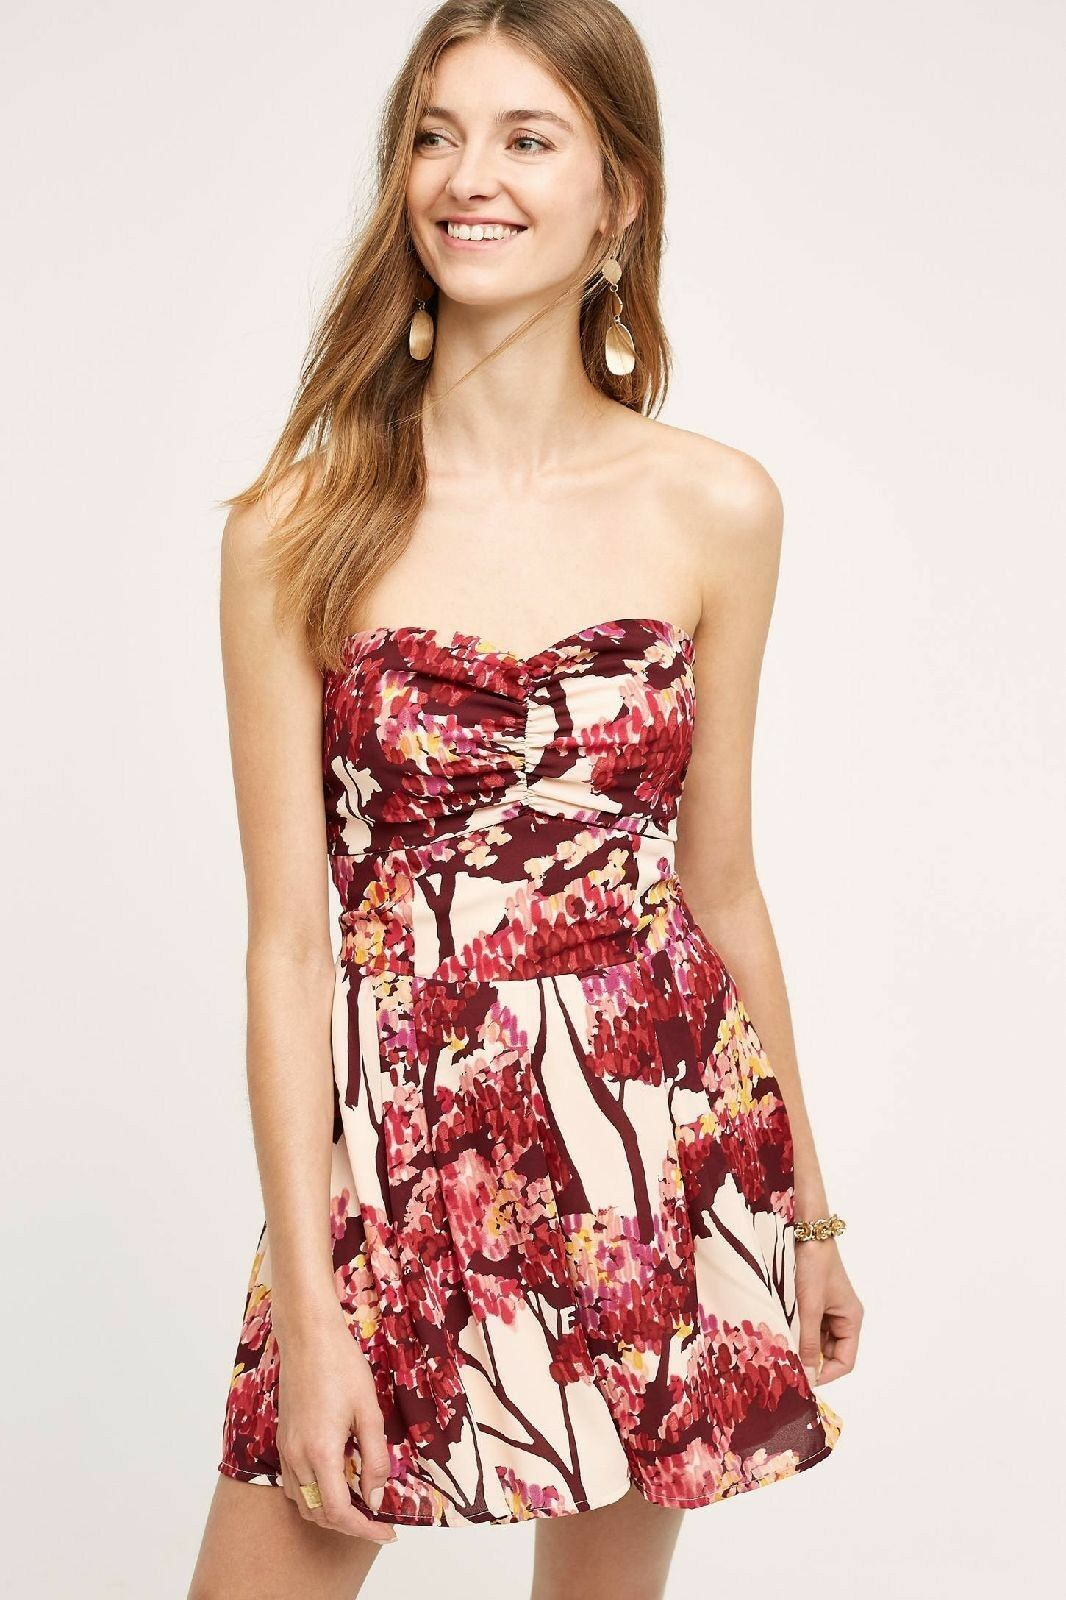 a08fb6ad7a50 NEW Anthropologie Crown Red Nara Romper 188 Size Small Paper Women s  nppvvn6764-Jumpsuits   Rompers